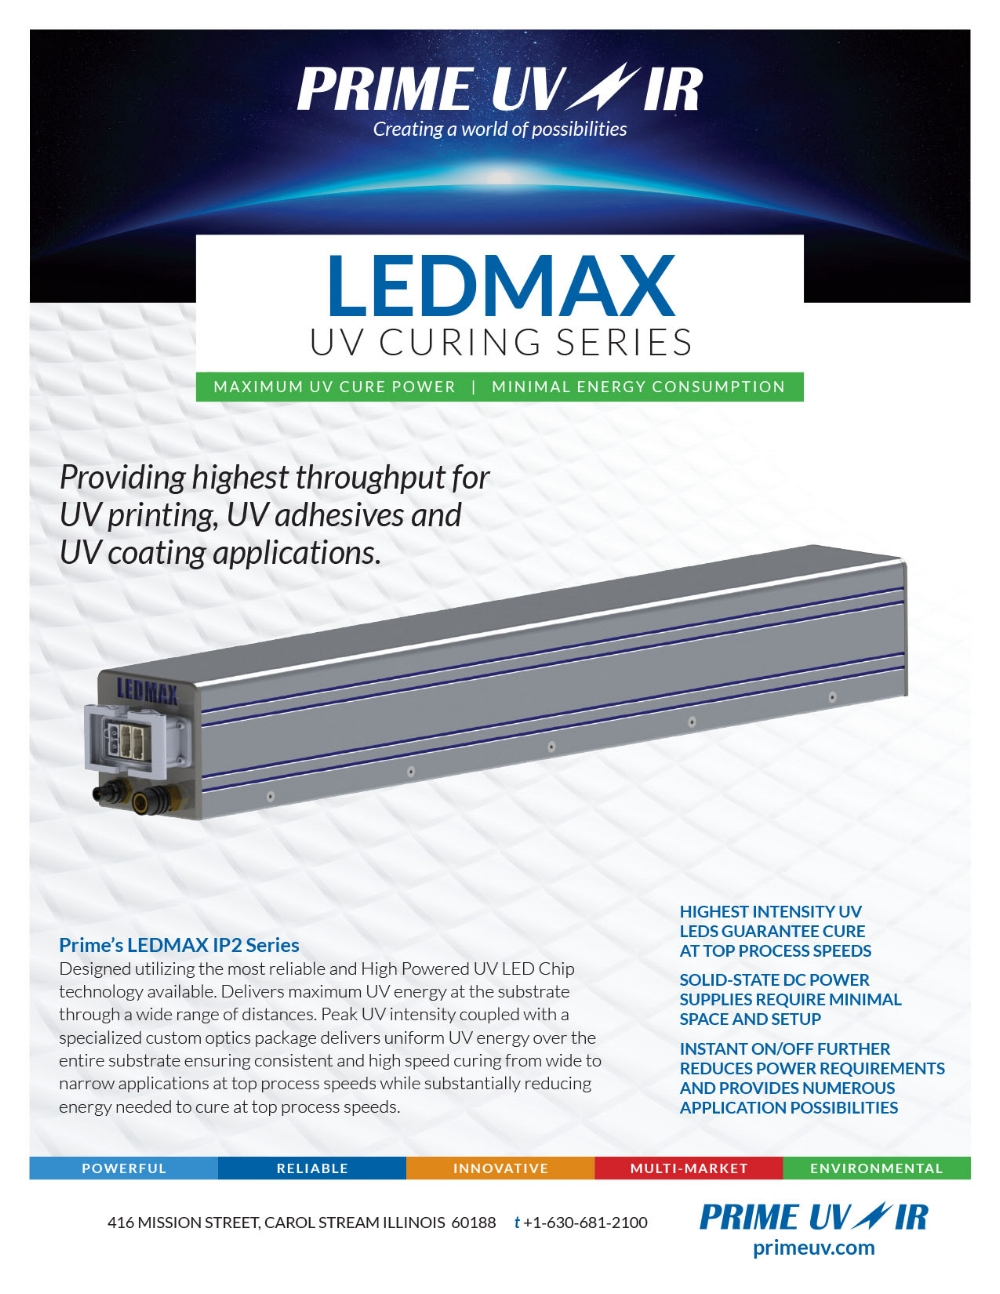 LED Max UV Curing Series Information sheet